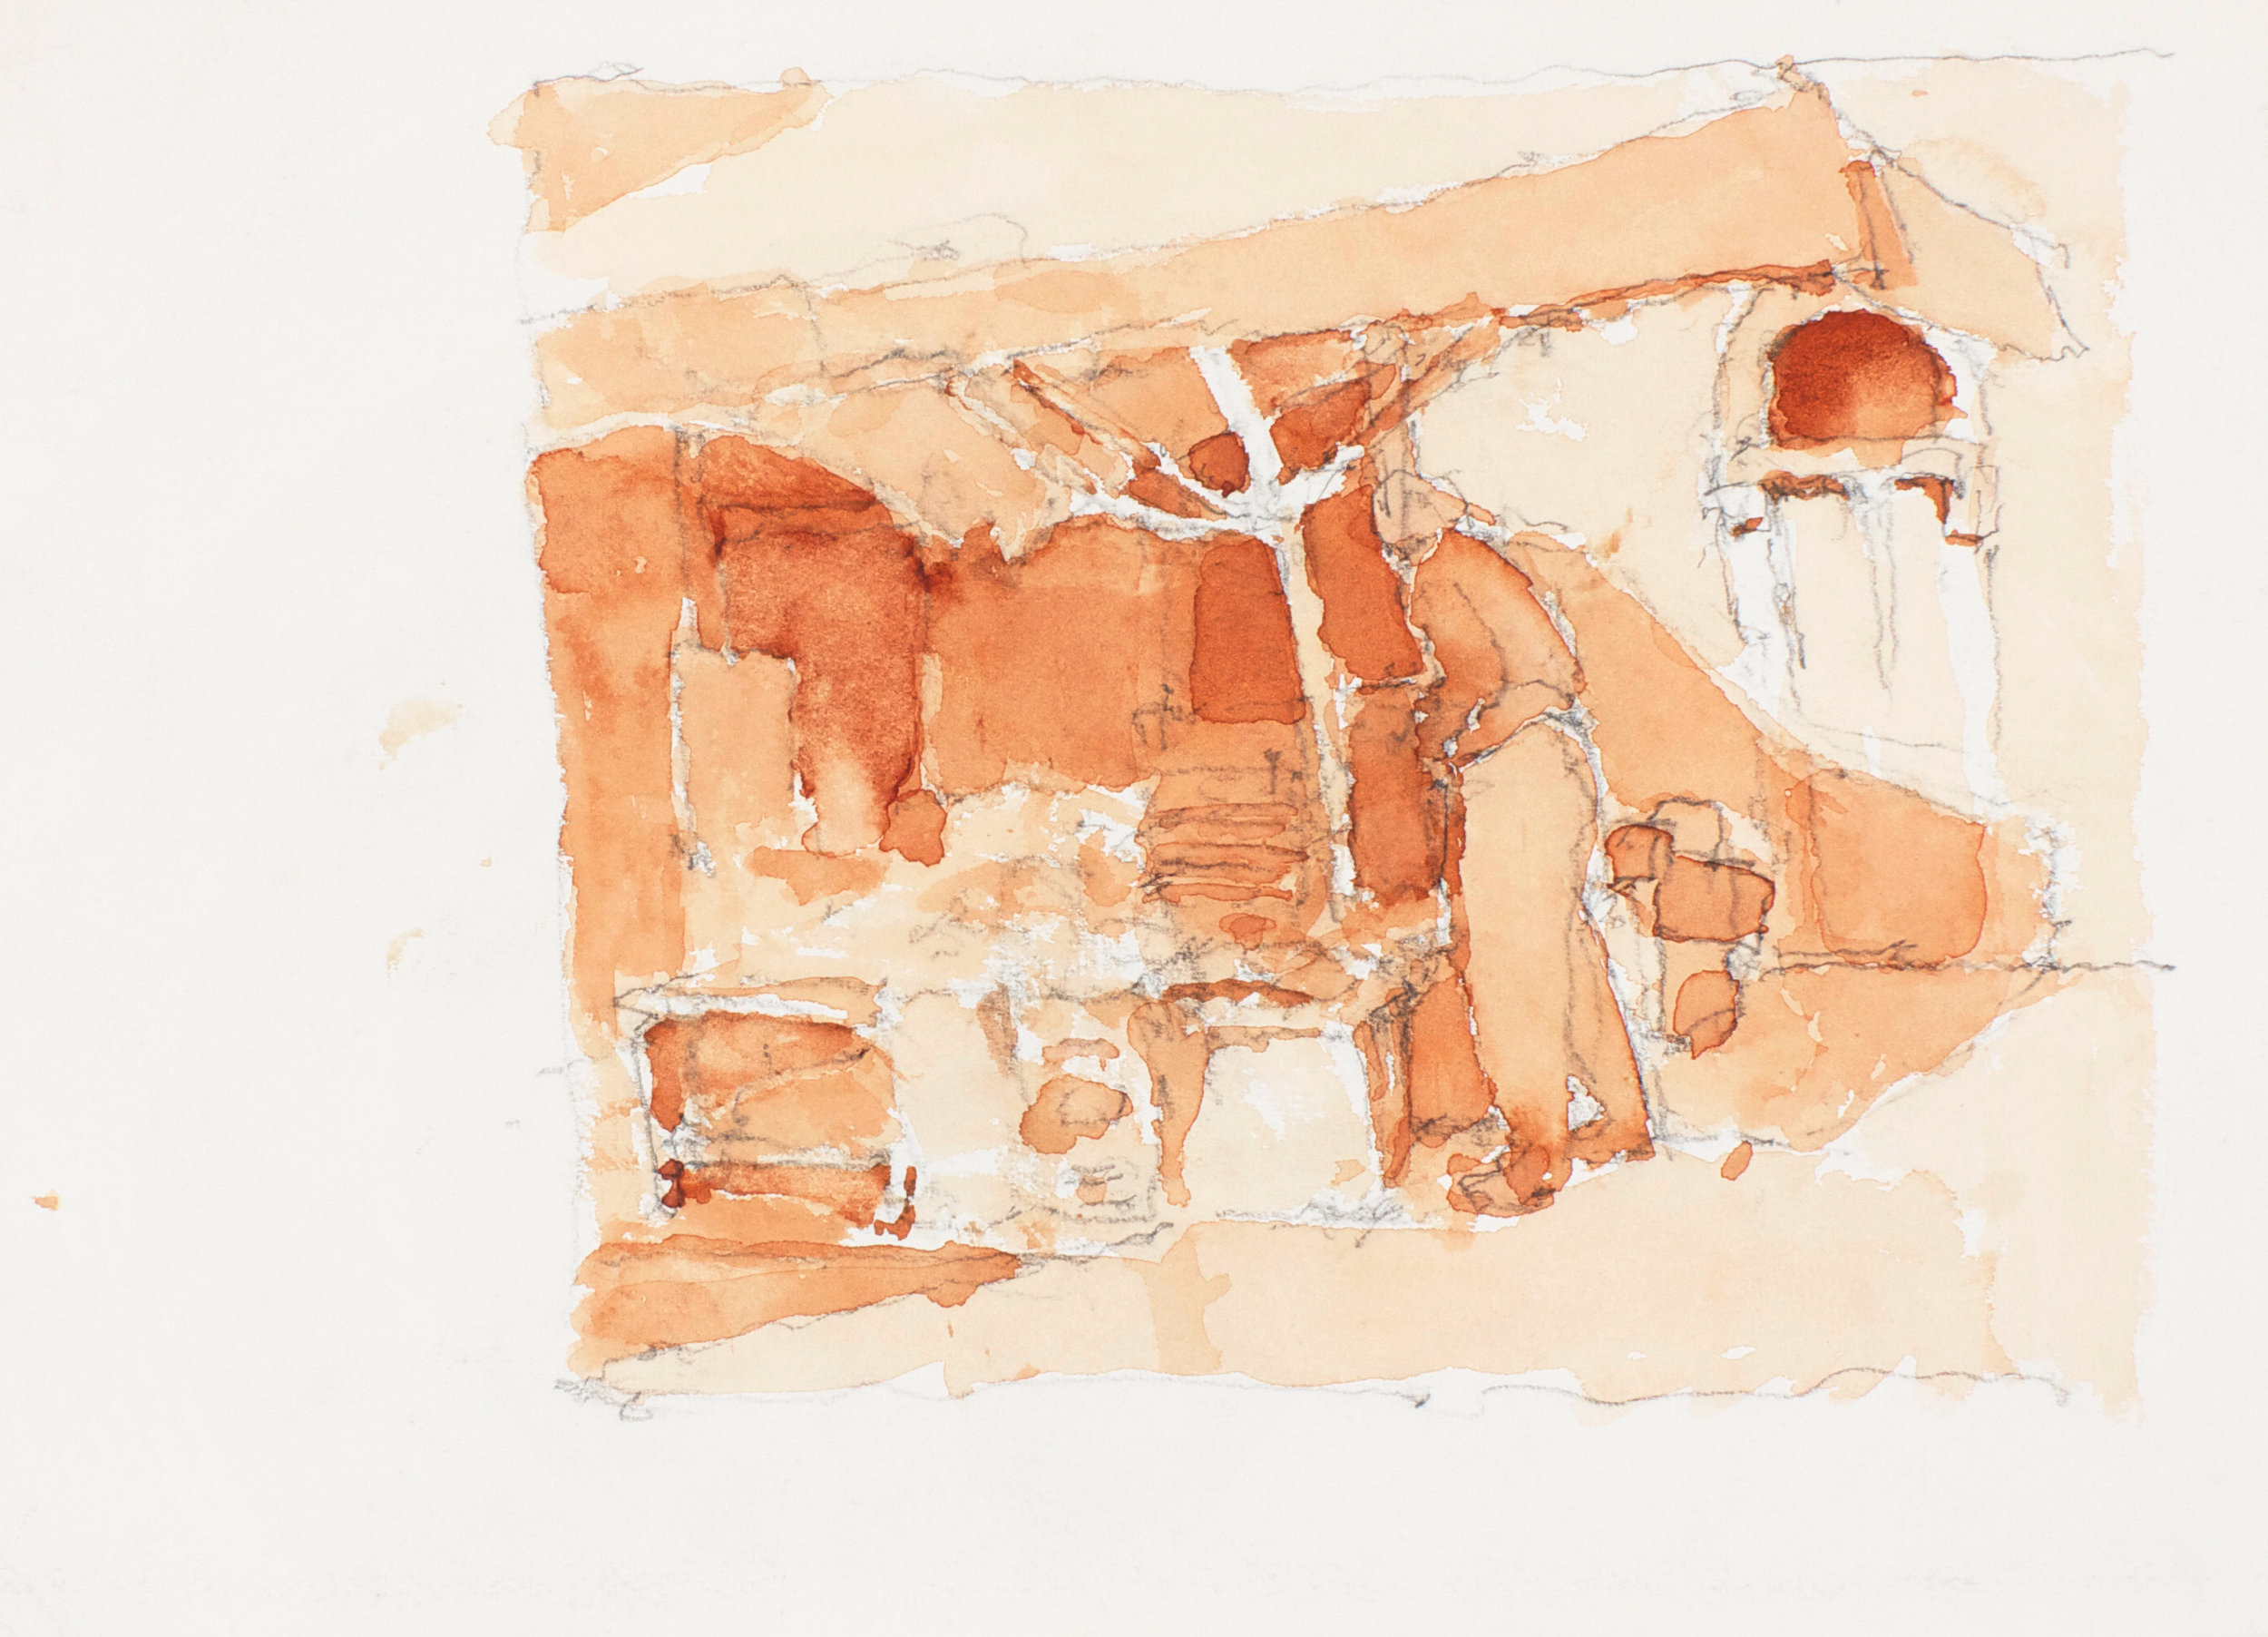 2004_At_The_Market_Venice_watercolour_and_pencil_on_paper_10x14in_WPF313.jpg